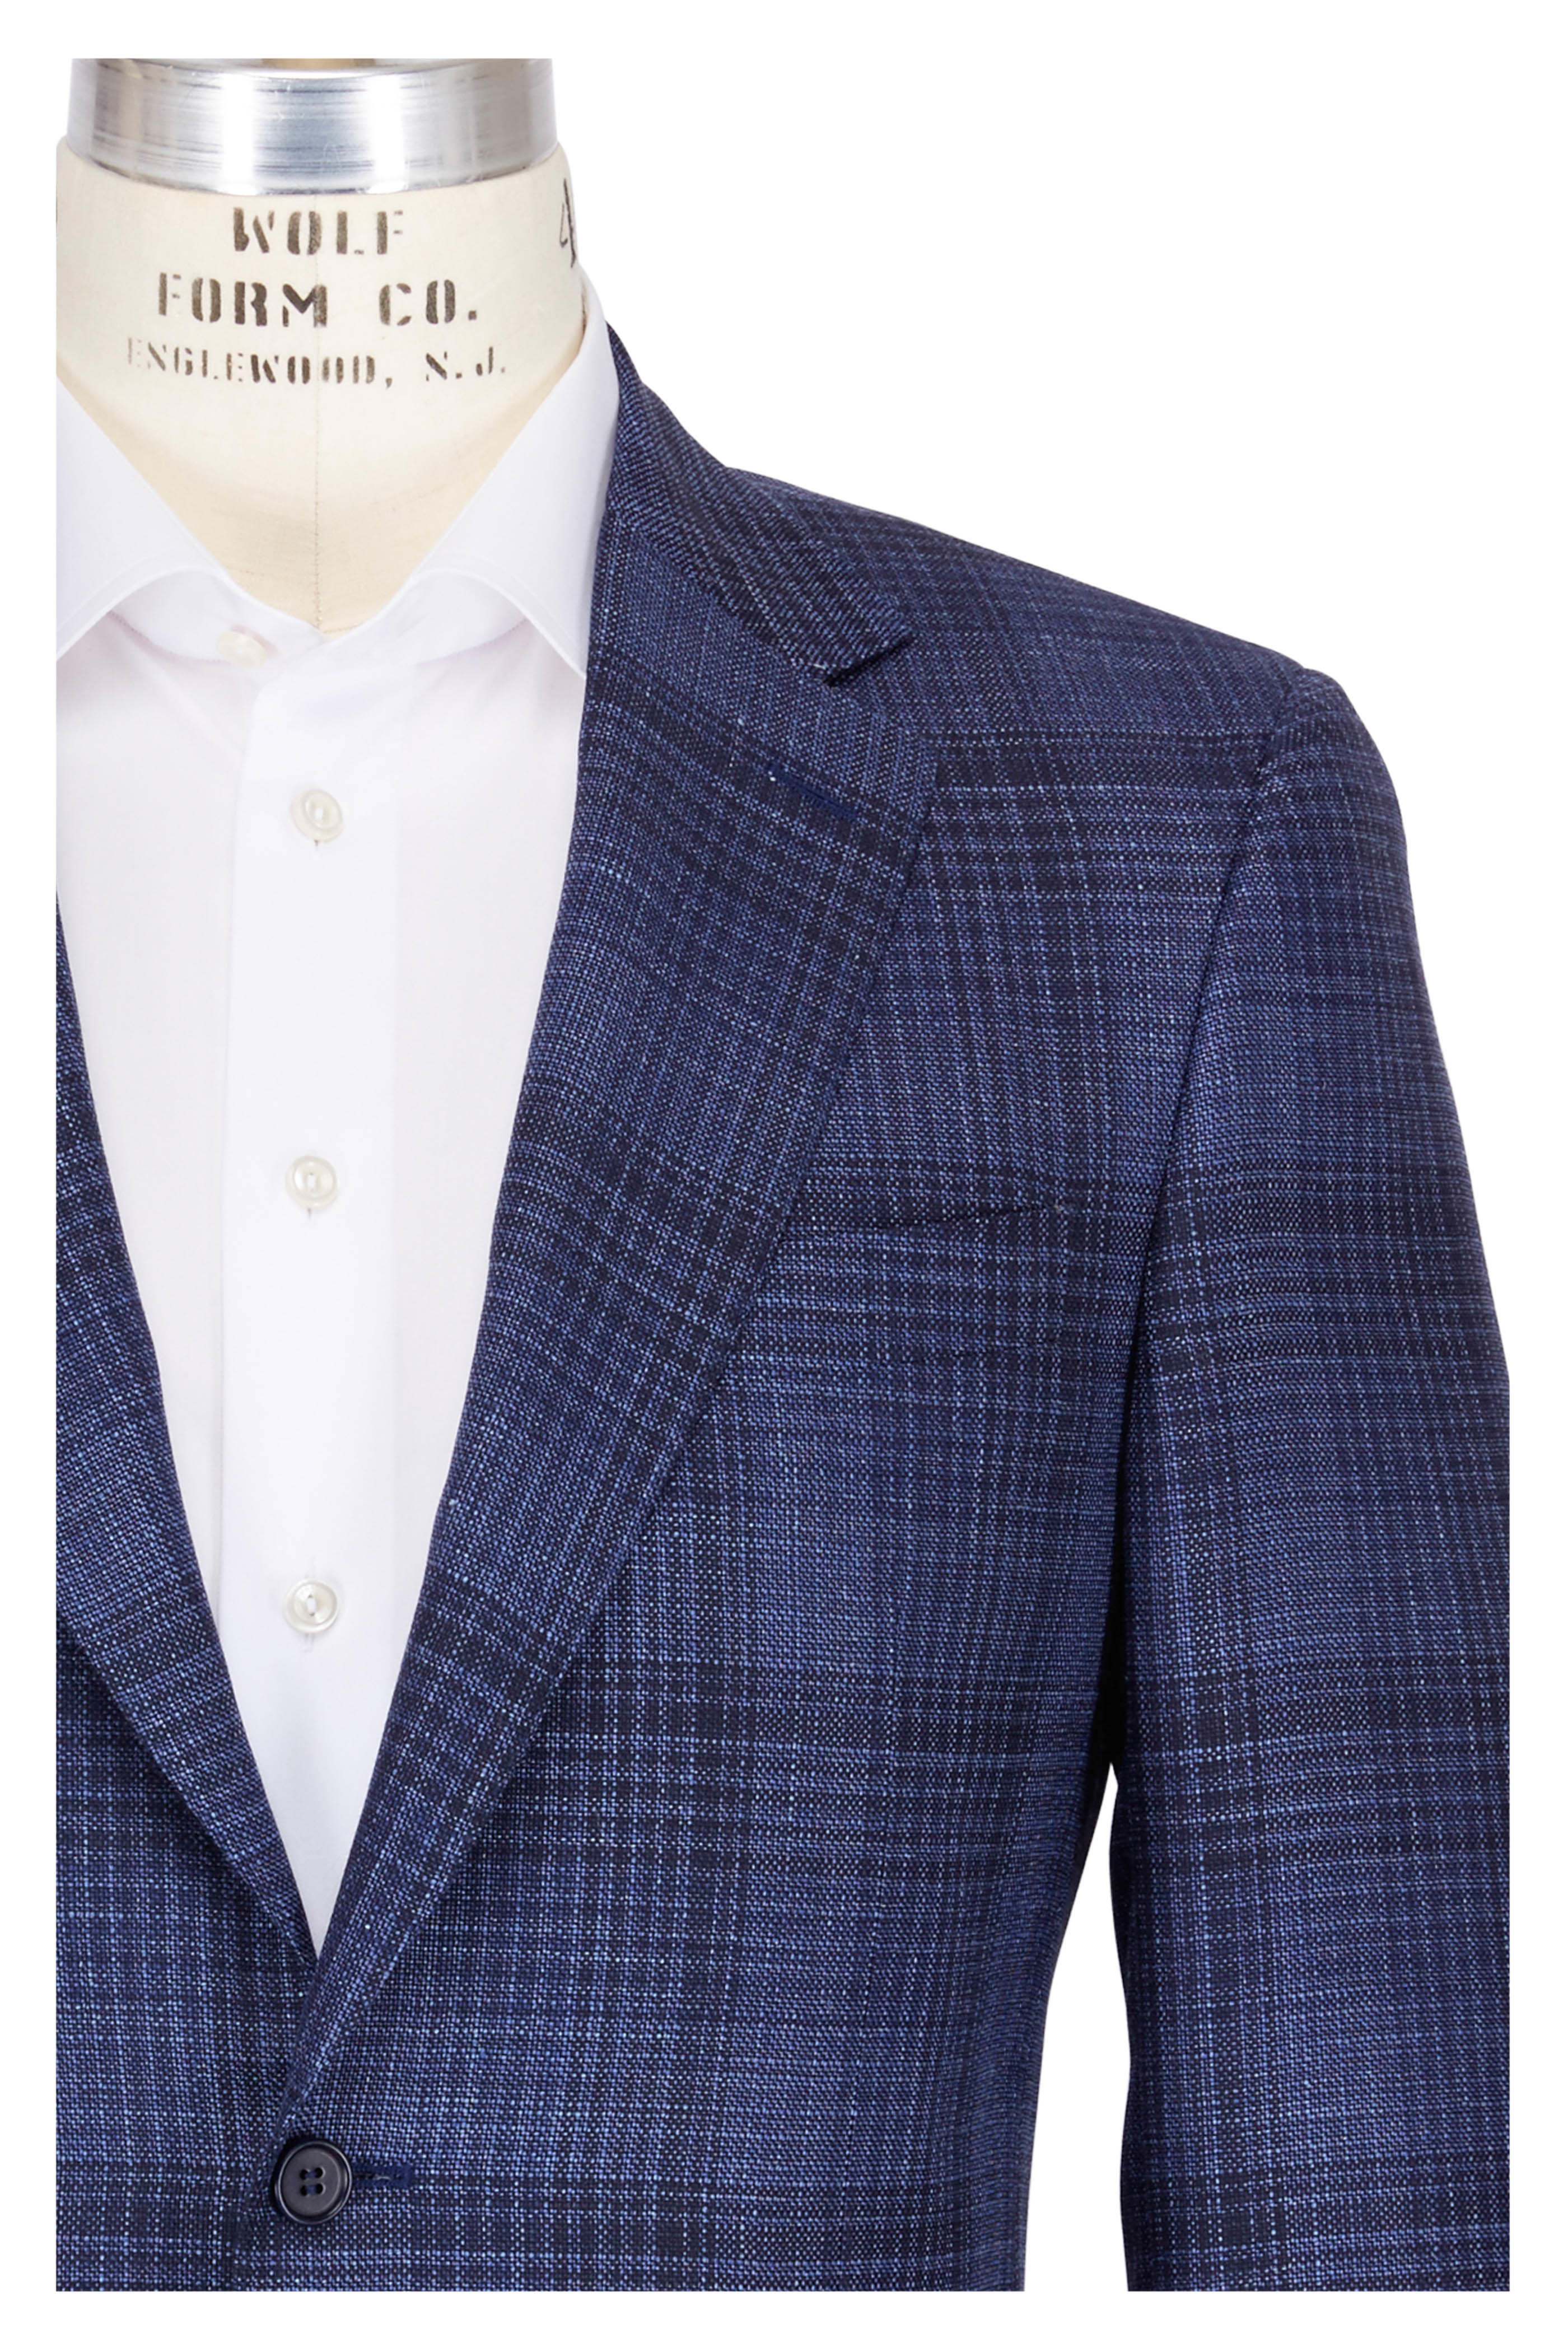 96d7fc0909fb32 Canali - Navy Blue Wool Tonal Plaid Sportcoat | Mitchell Stores